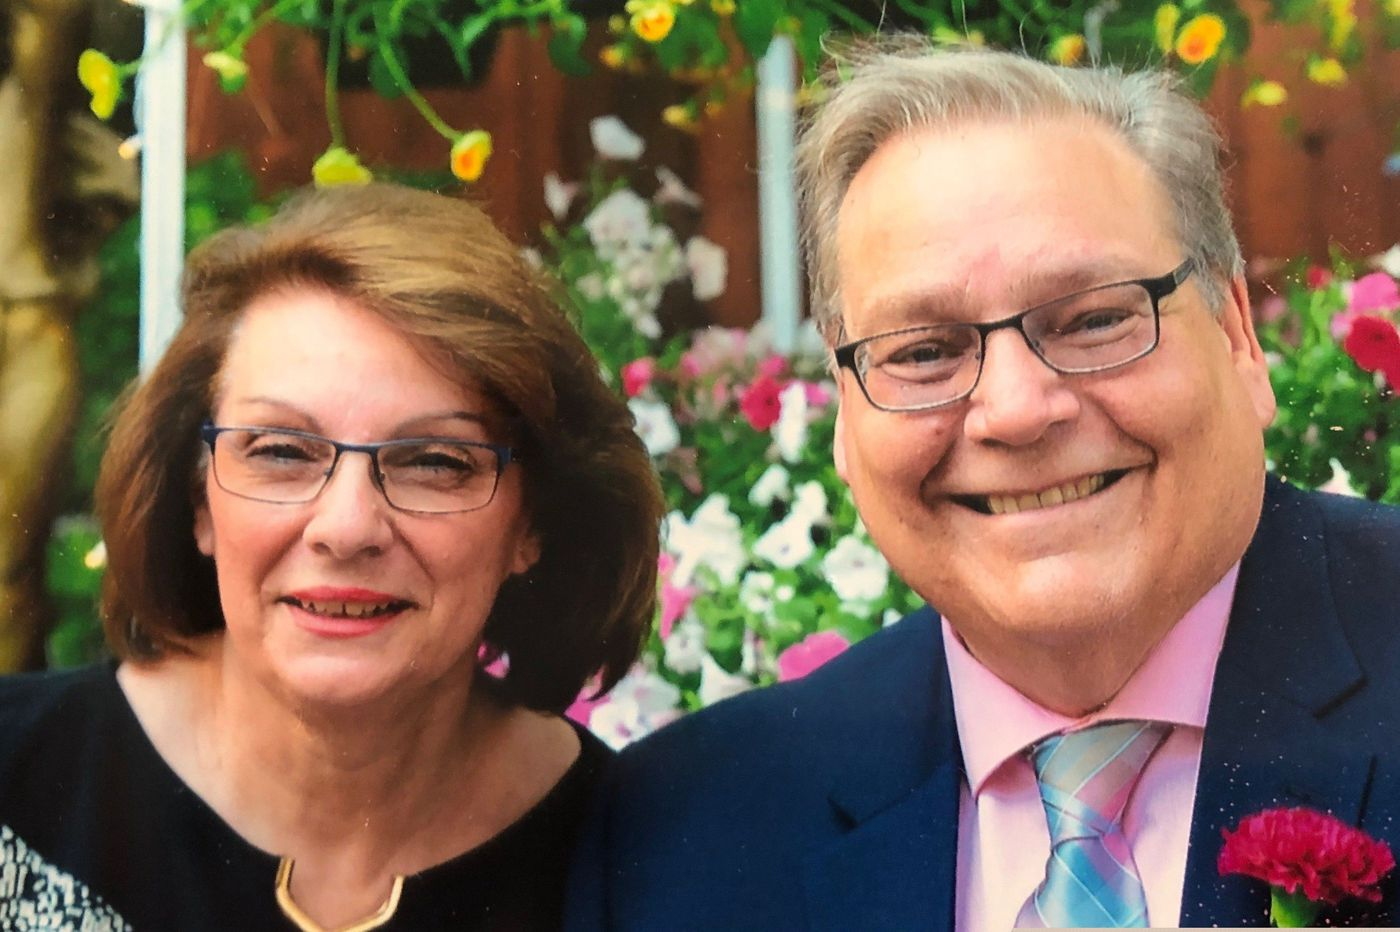 Larry Picarello, 71, was a selfless volunteer who loved family and travel